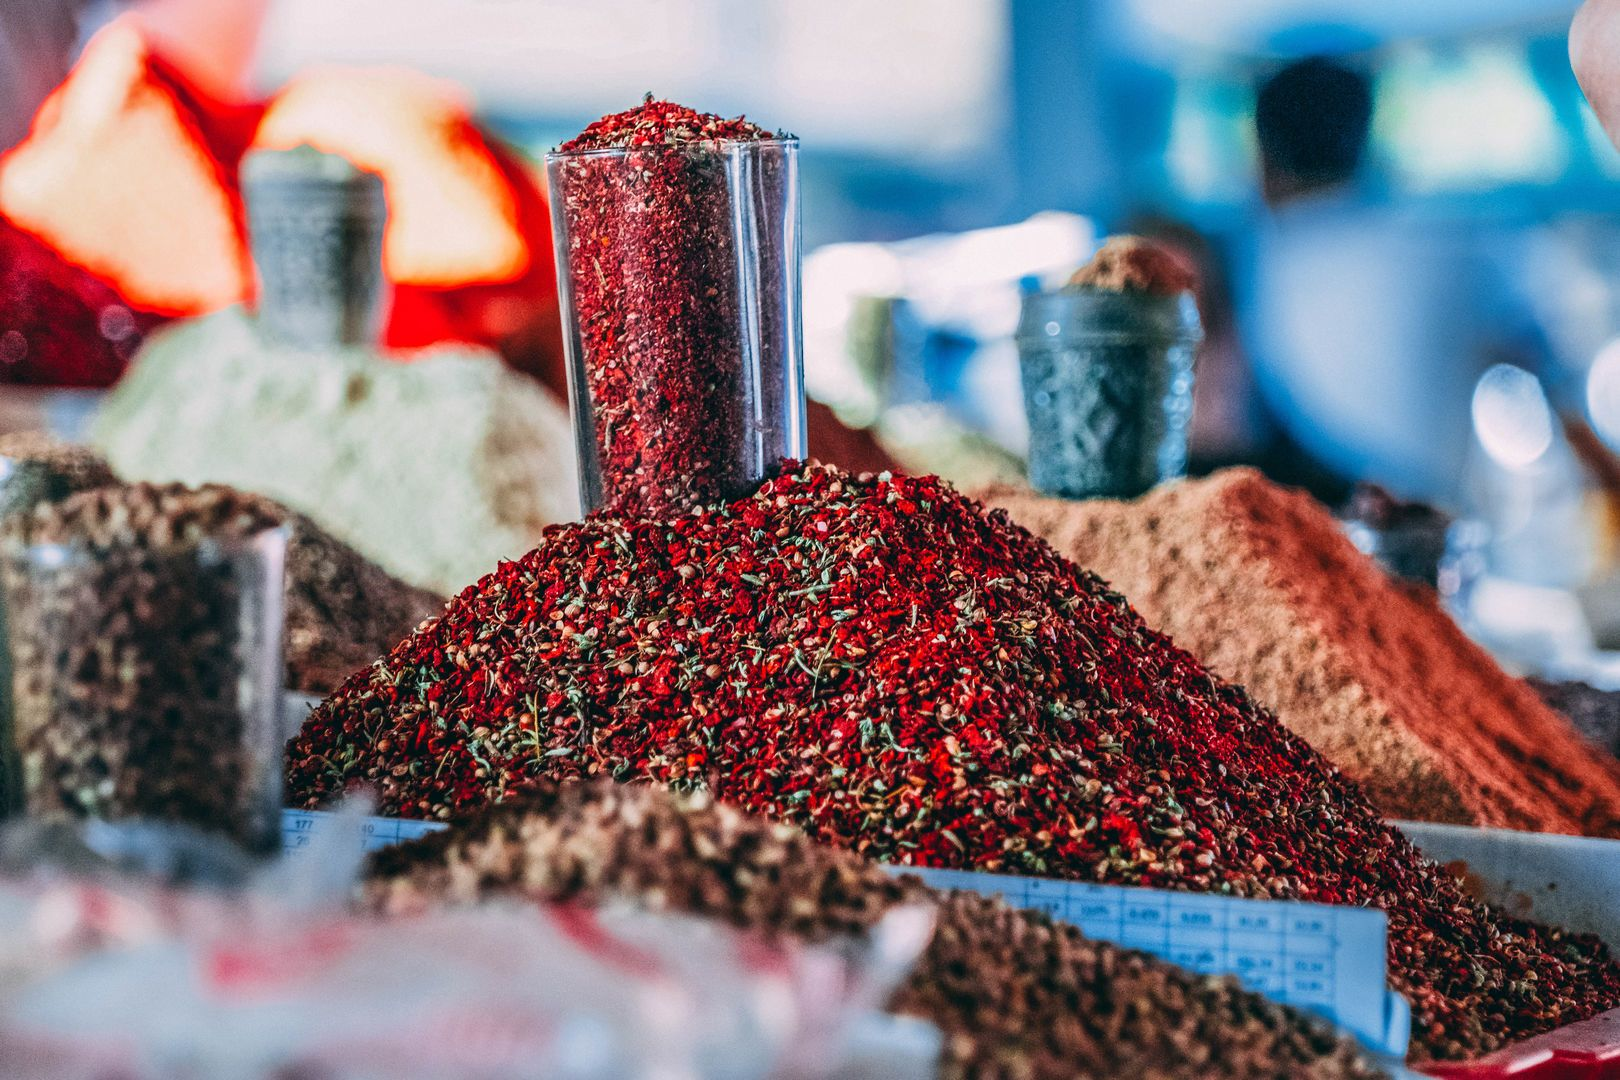 Silk Road spices, Uzbekistan, trade